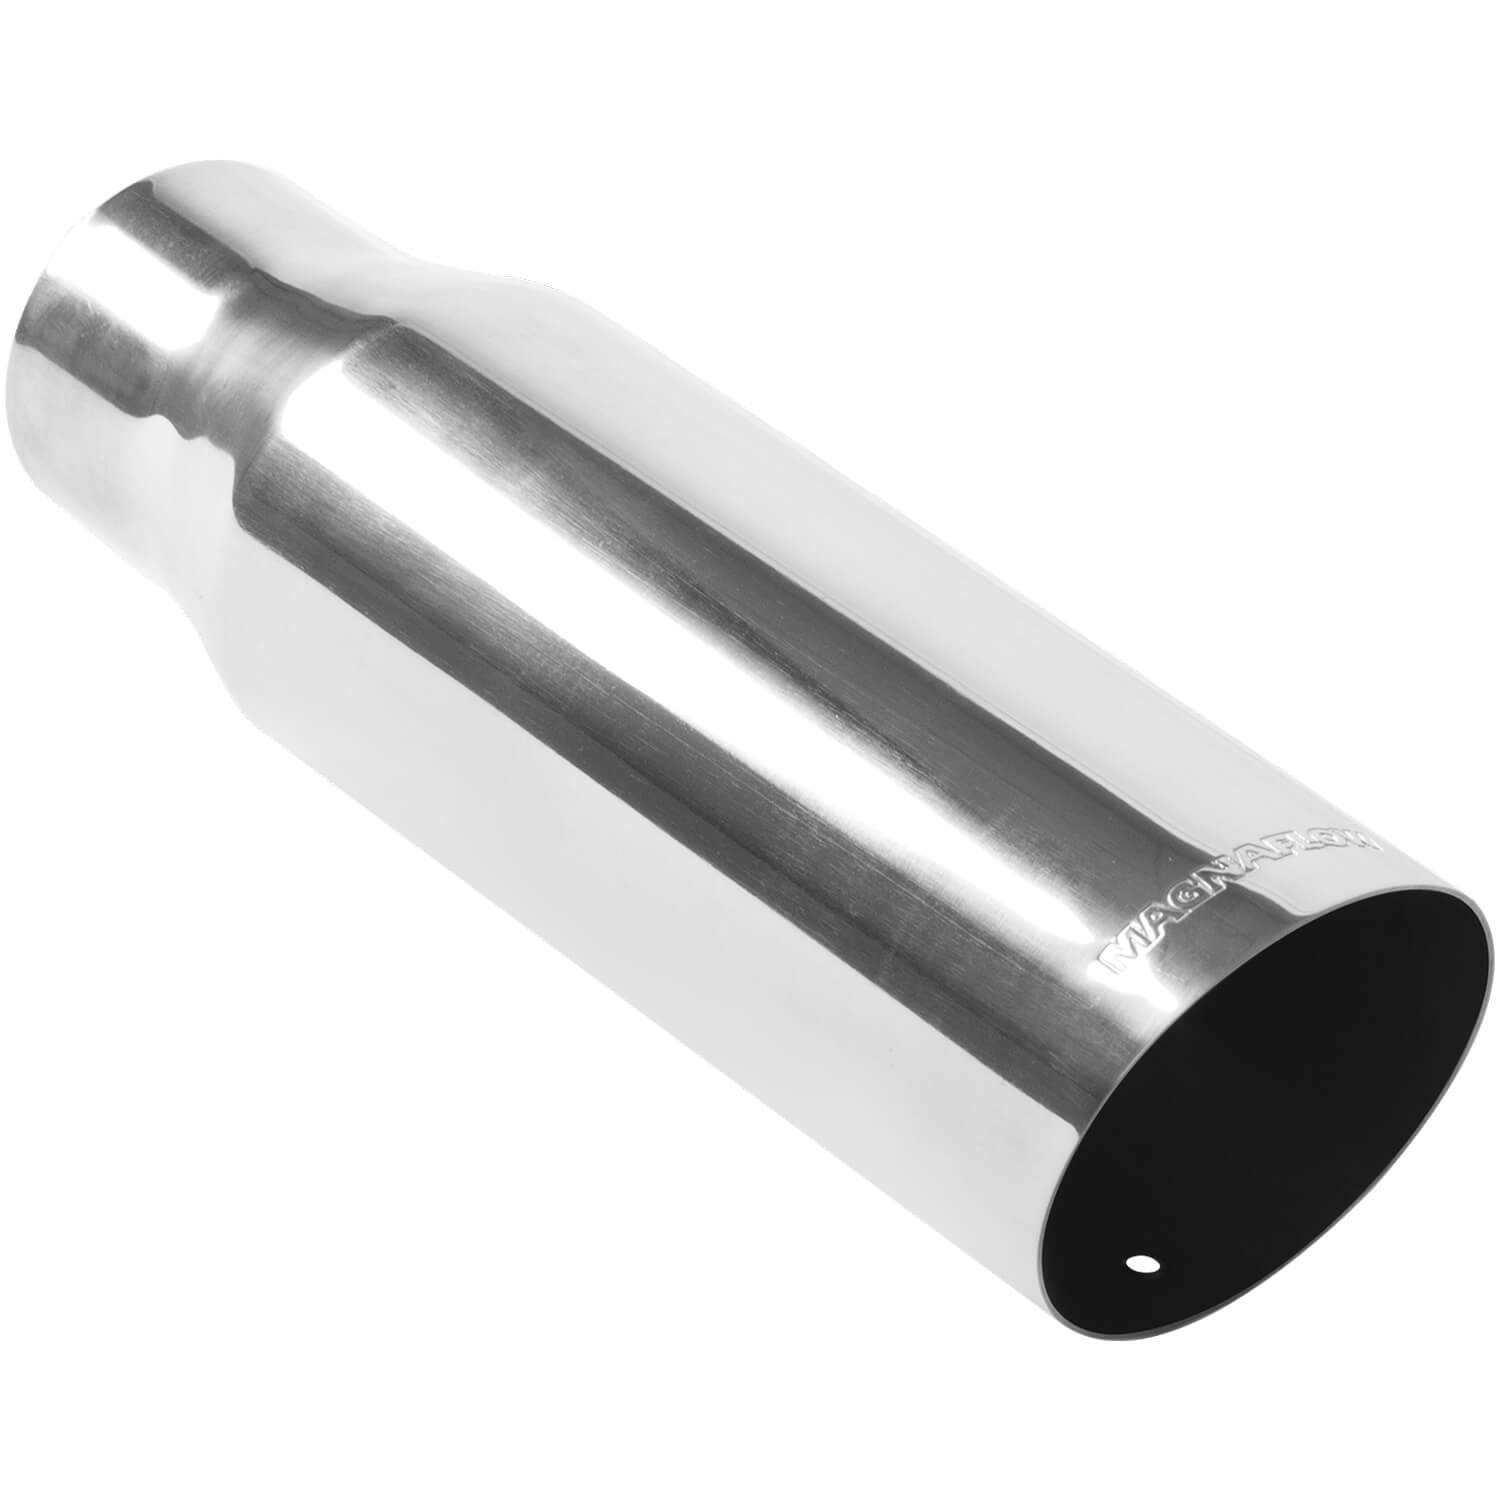 Magnaflow 35107 - Magnaflow Polished Stainless Steel Weld-On Single Exhaust Tips